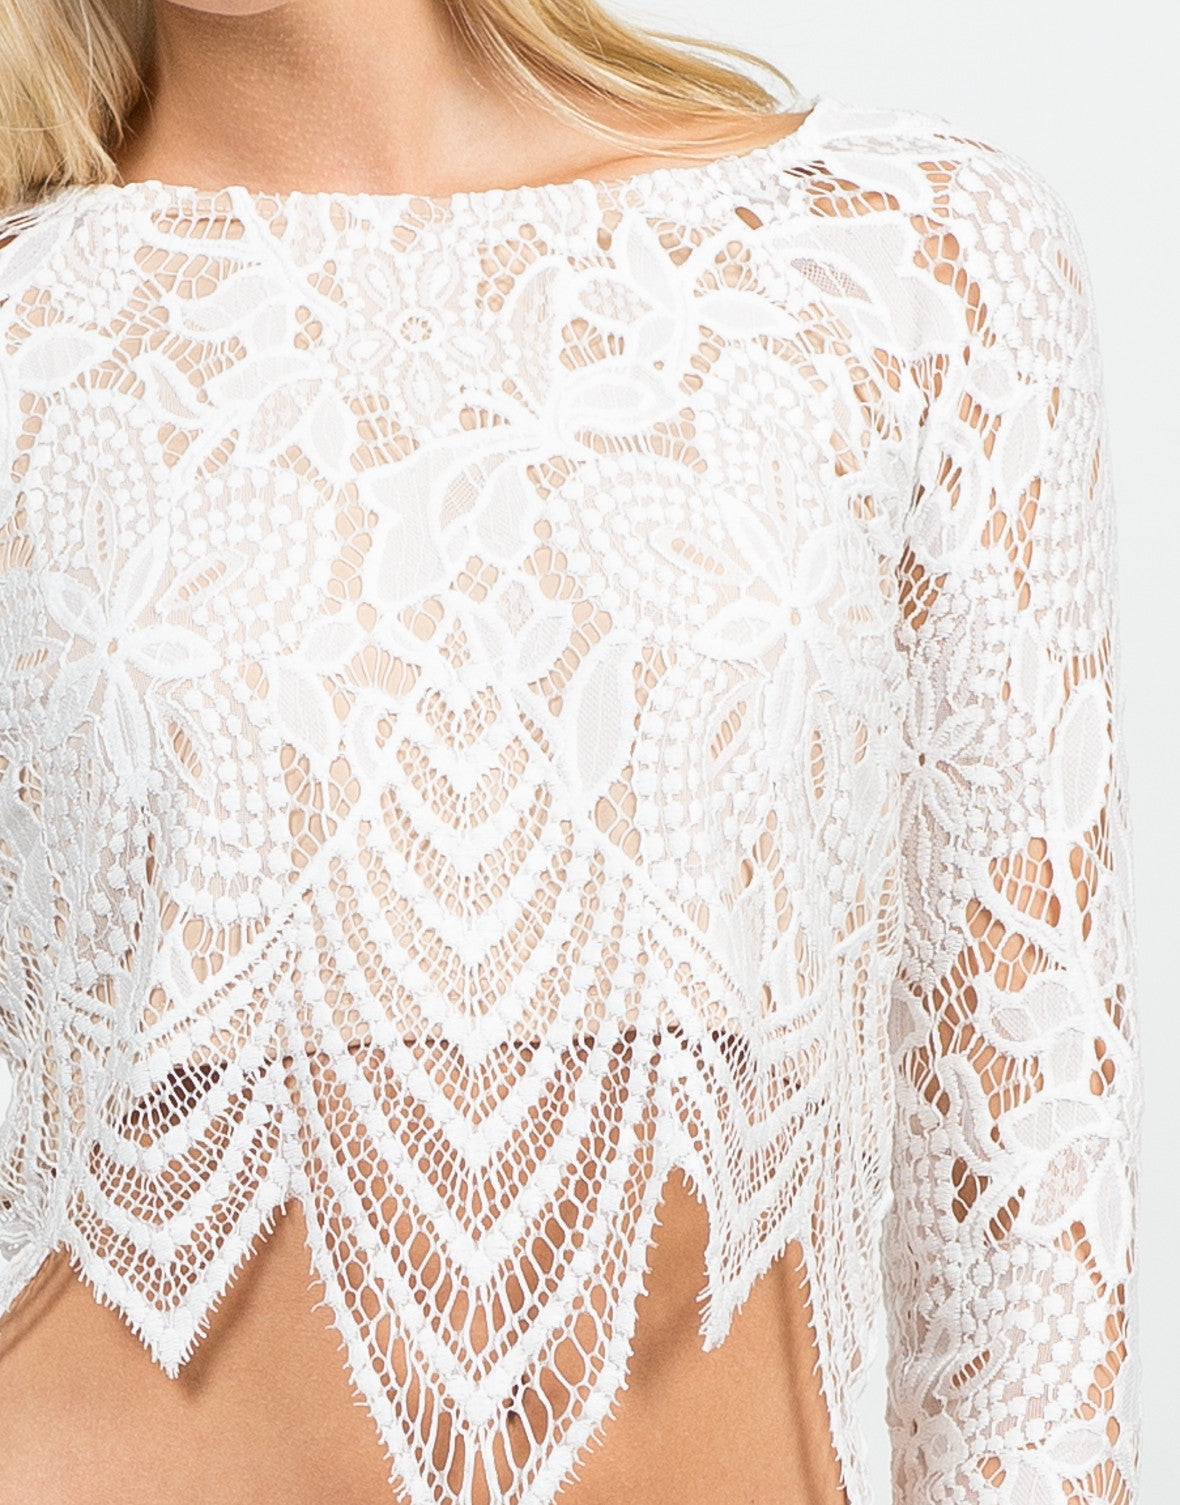 Detail of Floral Lace Crop Top